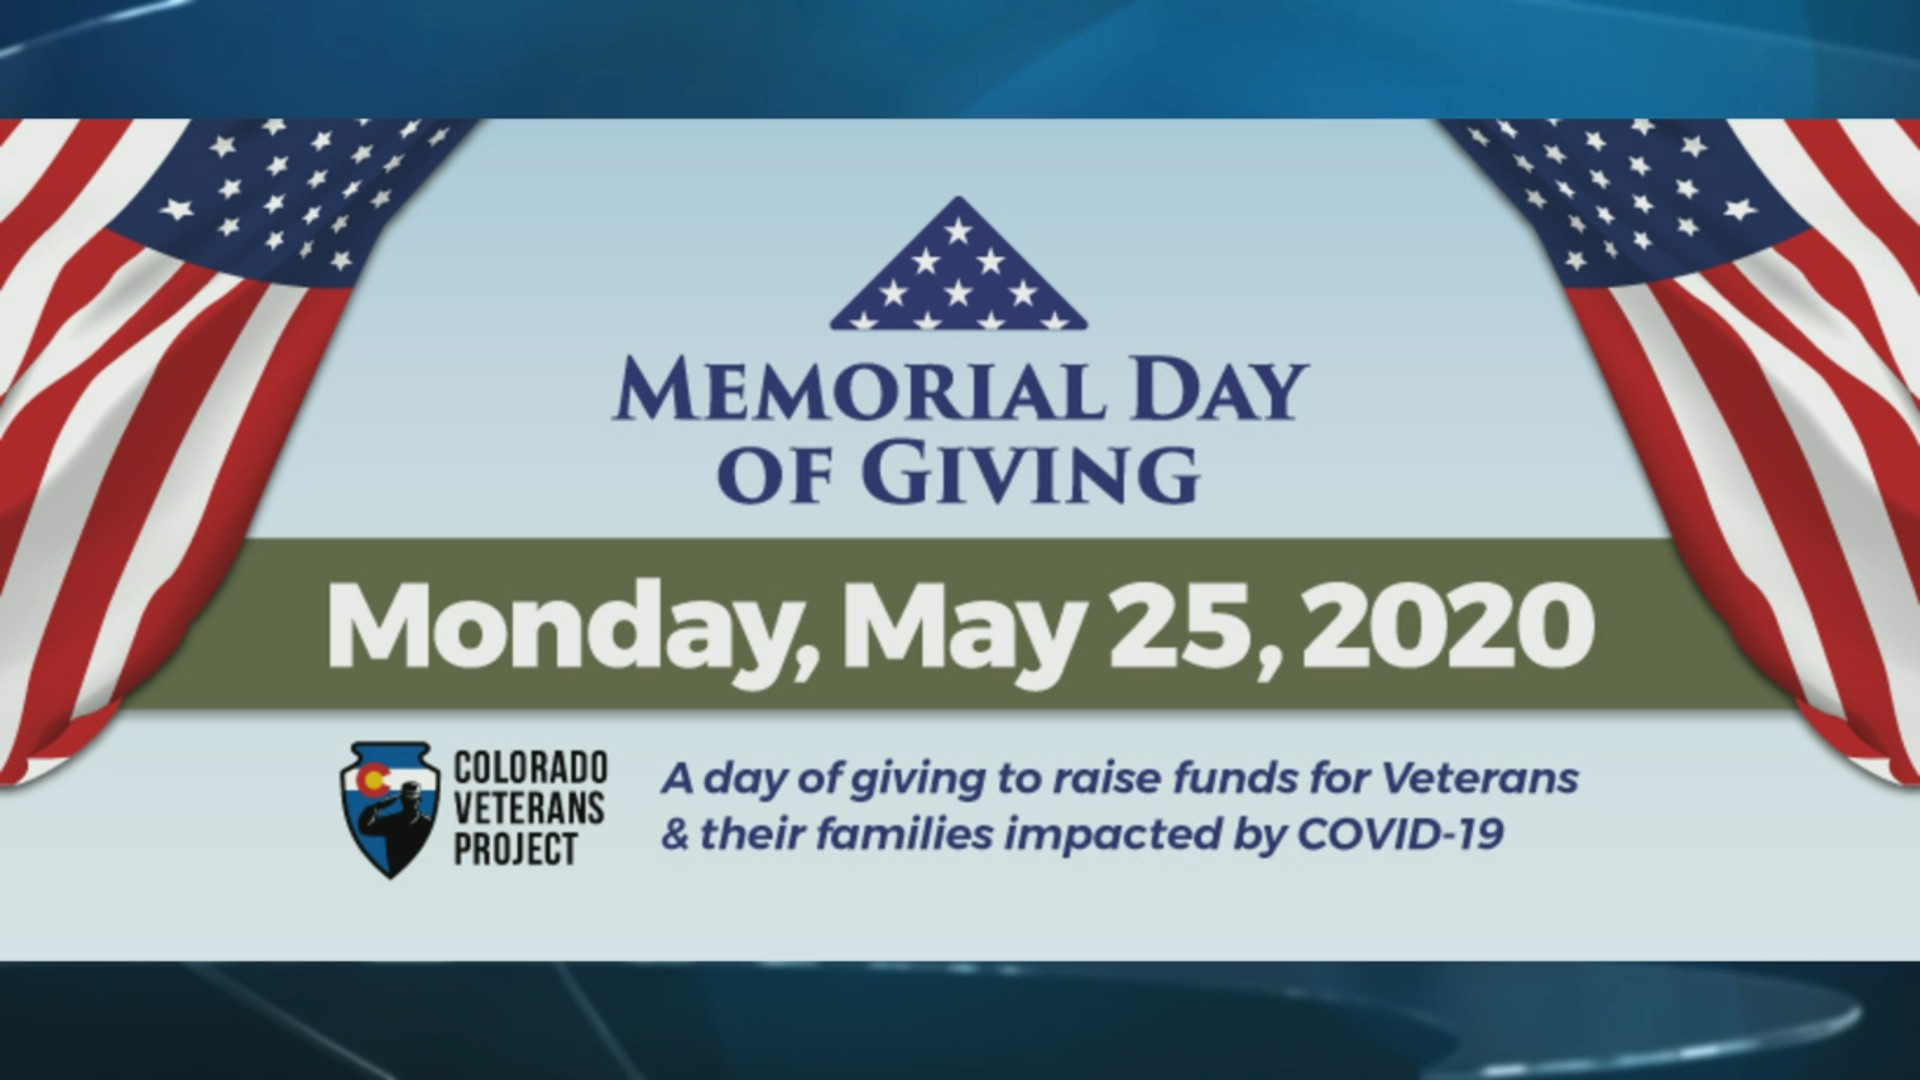 Colorado Veterans Project Memorial Day of Giving